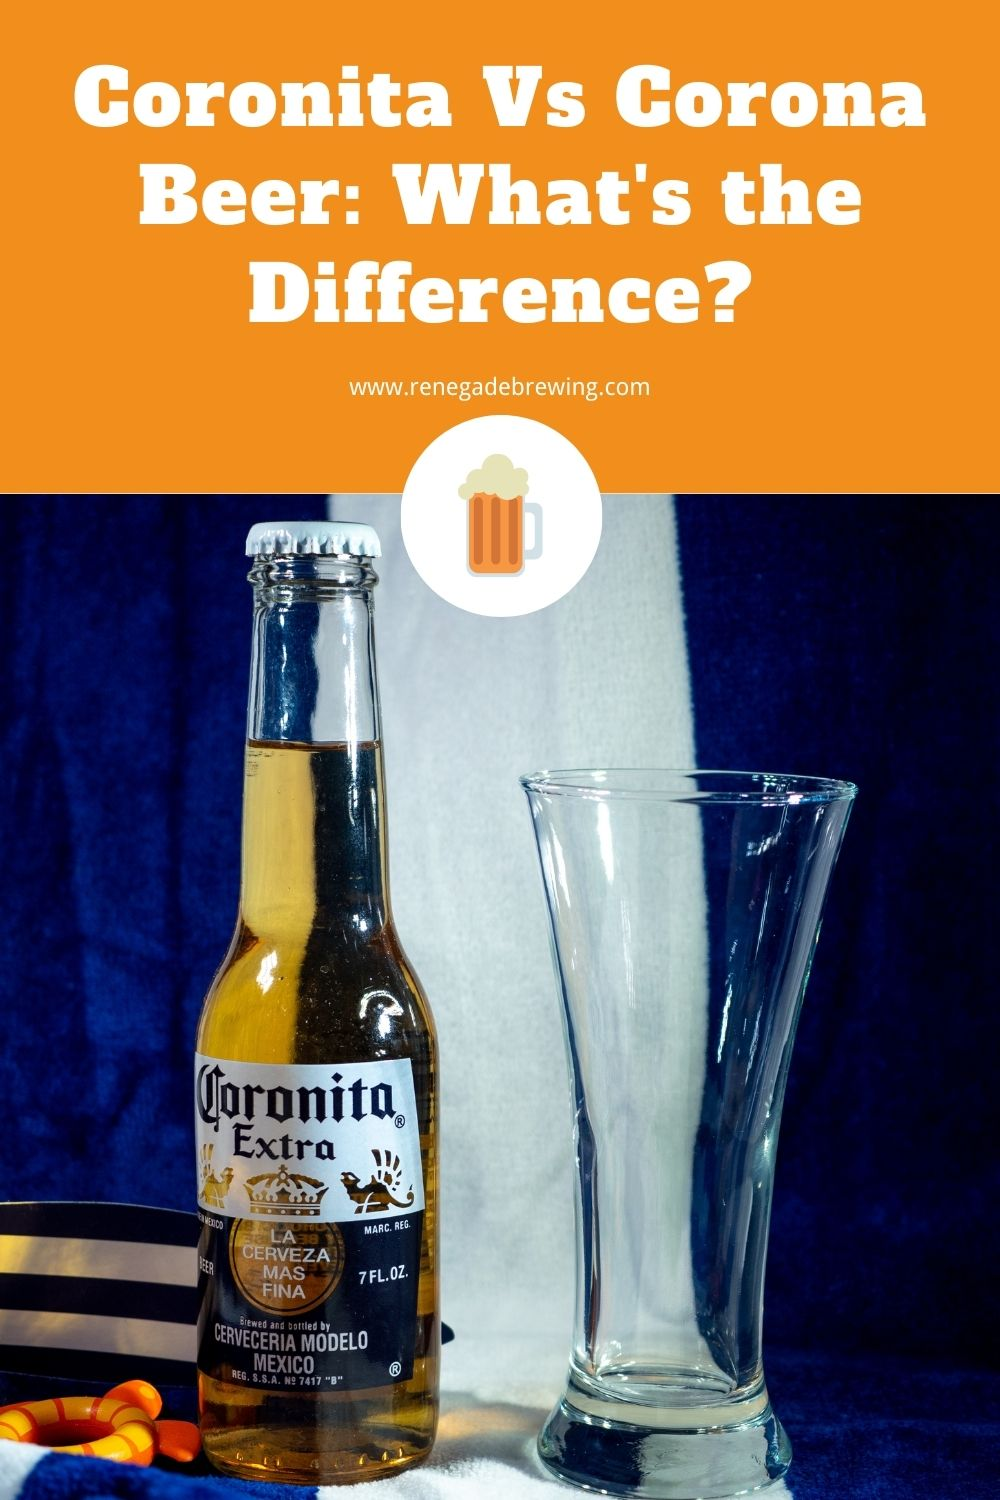 Coronita Vs Corona Beer What's the Difference 1